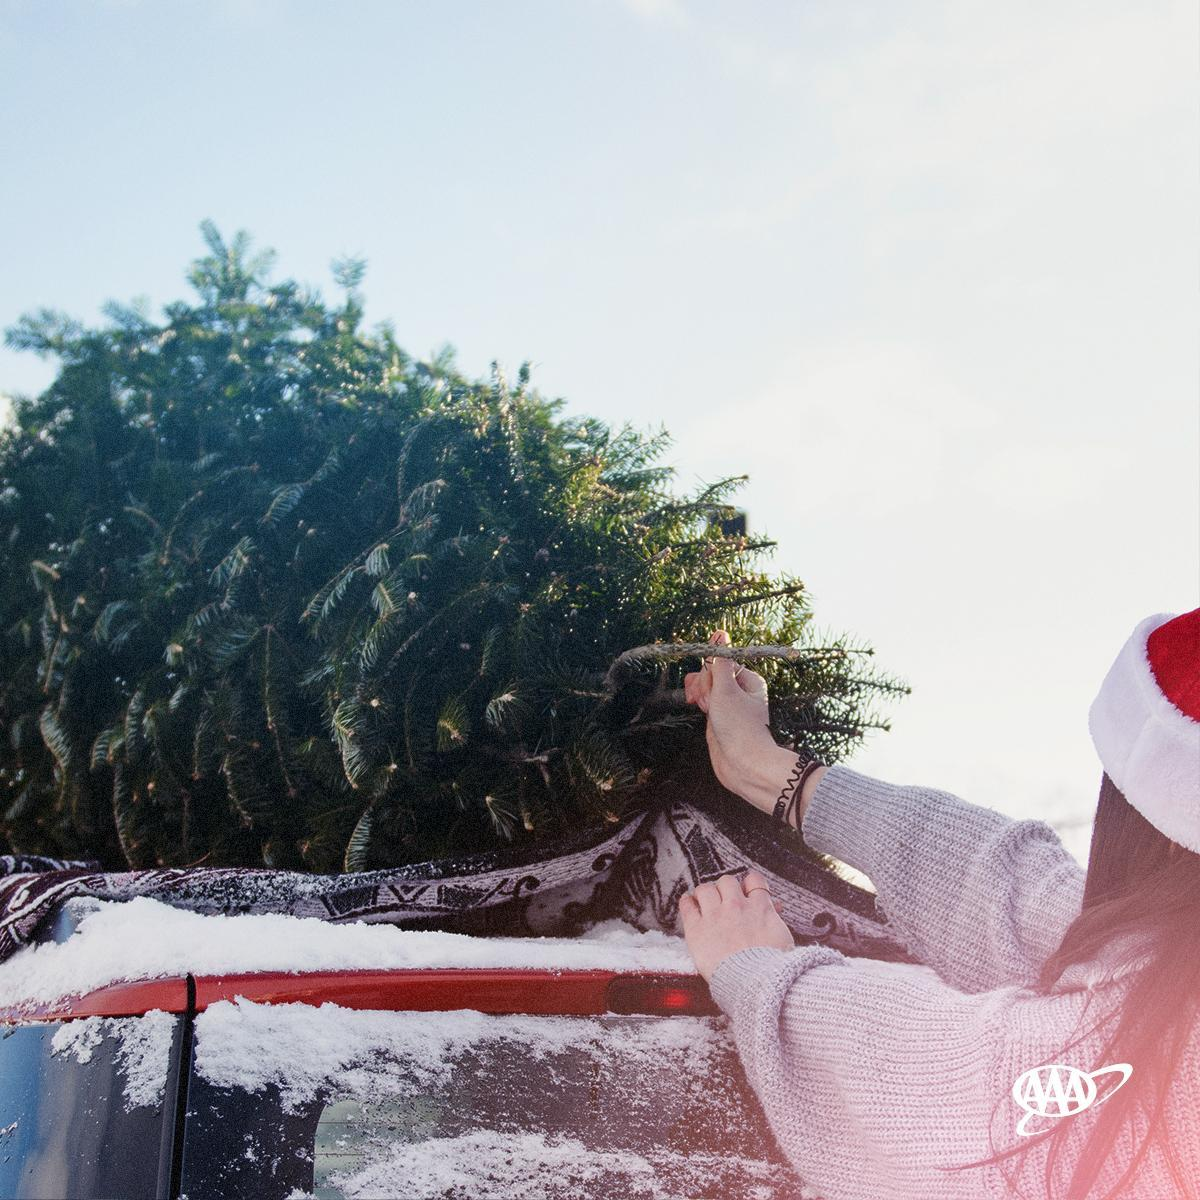 AAA research found that road debris caused more than 200,000 crashes in a 4-year period. Real Christmas trees can be dangerous projectiles if not properly secured. AAA offers these easy to follow steps  #christmastree #christmas2019 #AAA